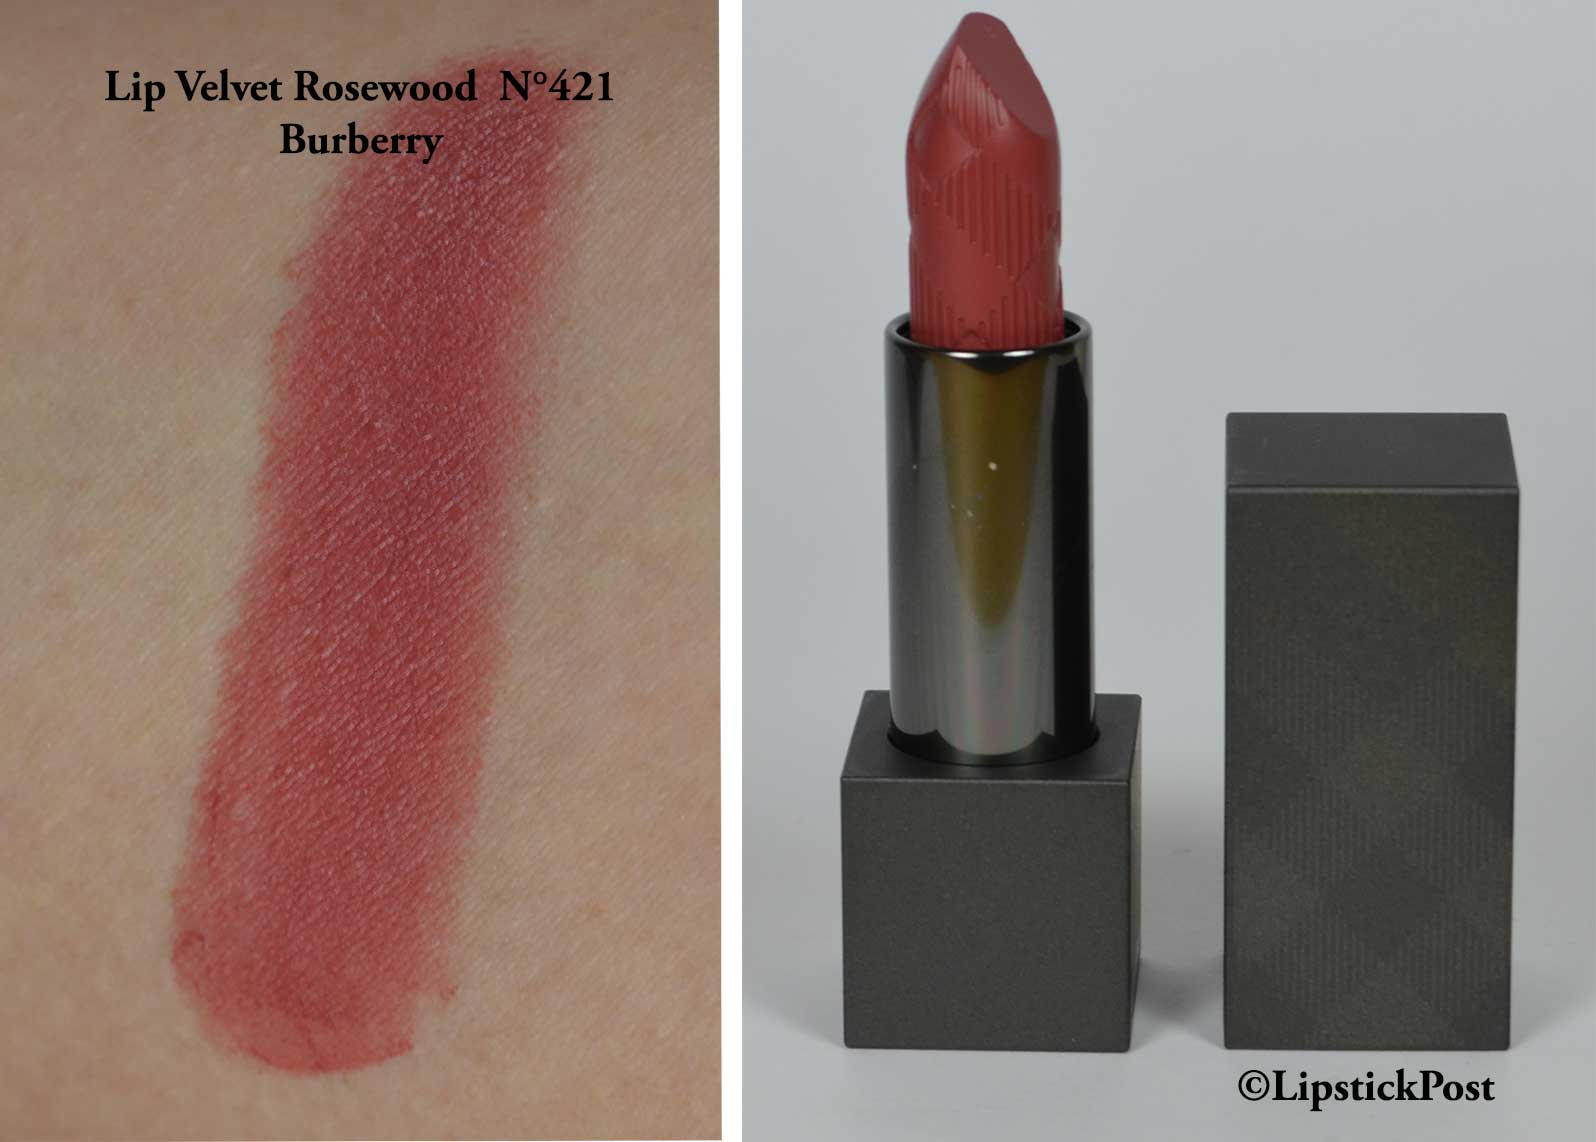 Lip velvet Burberry